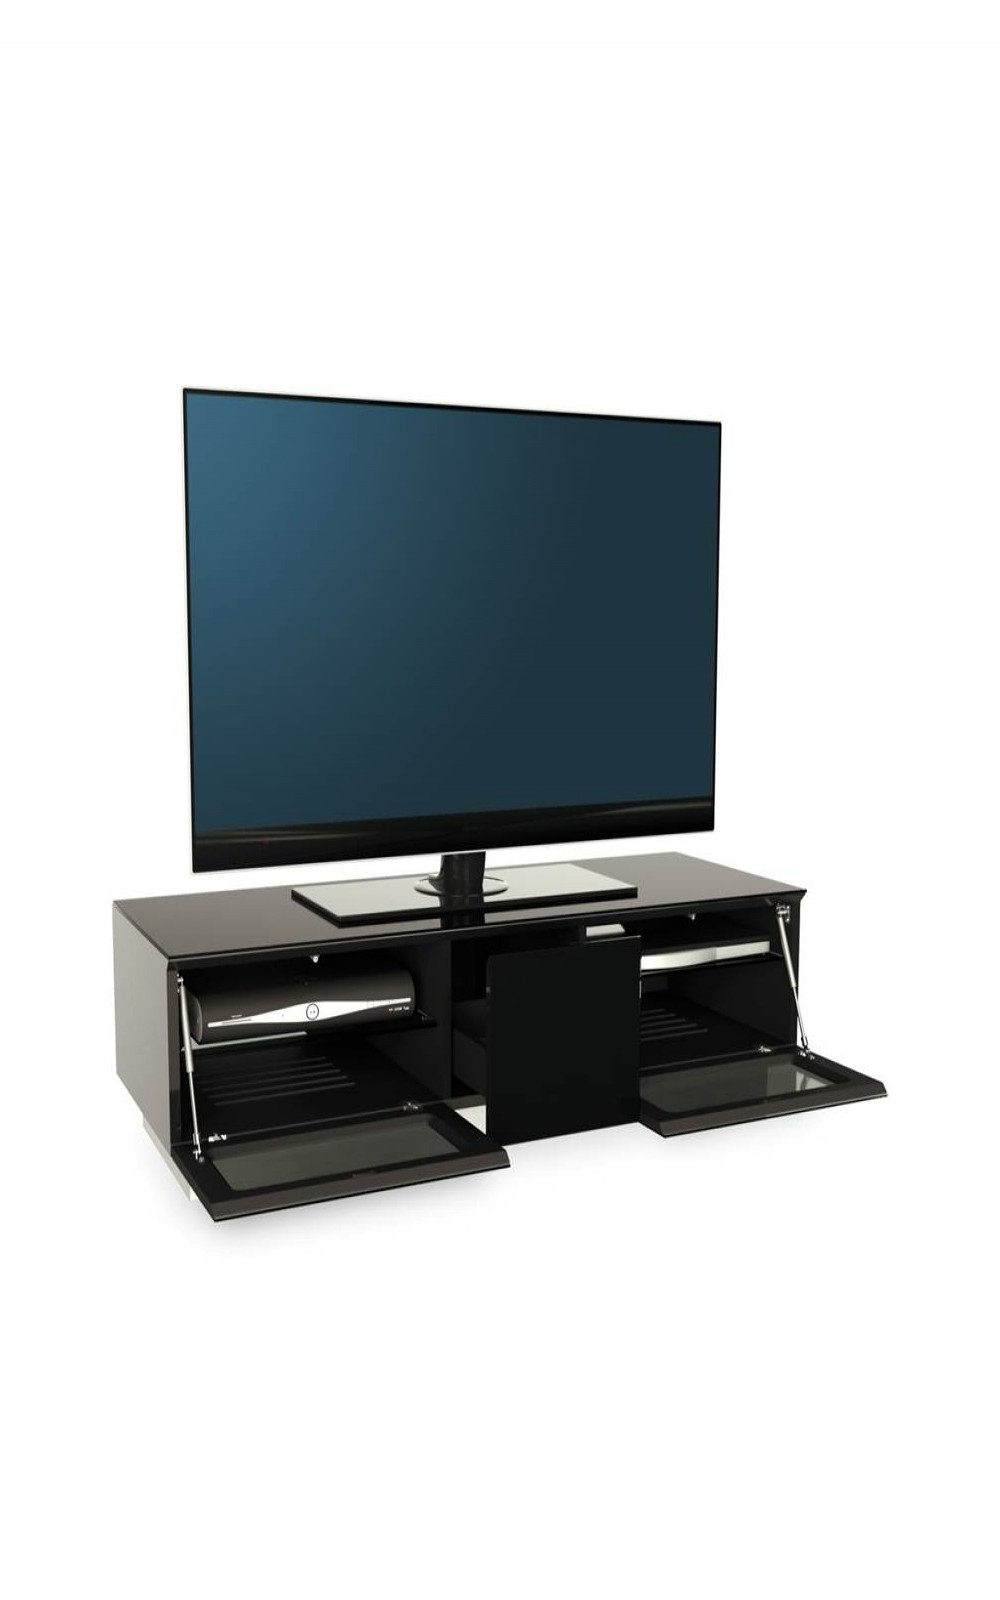 TV Stand Element Modular EMTMOD1250-BLK Black TV Stand with Glass Top